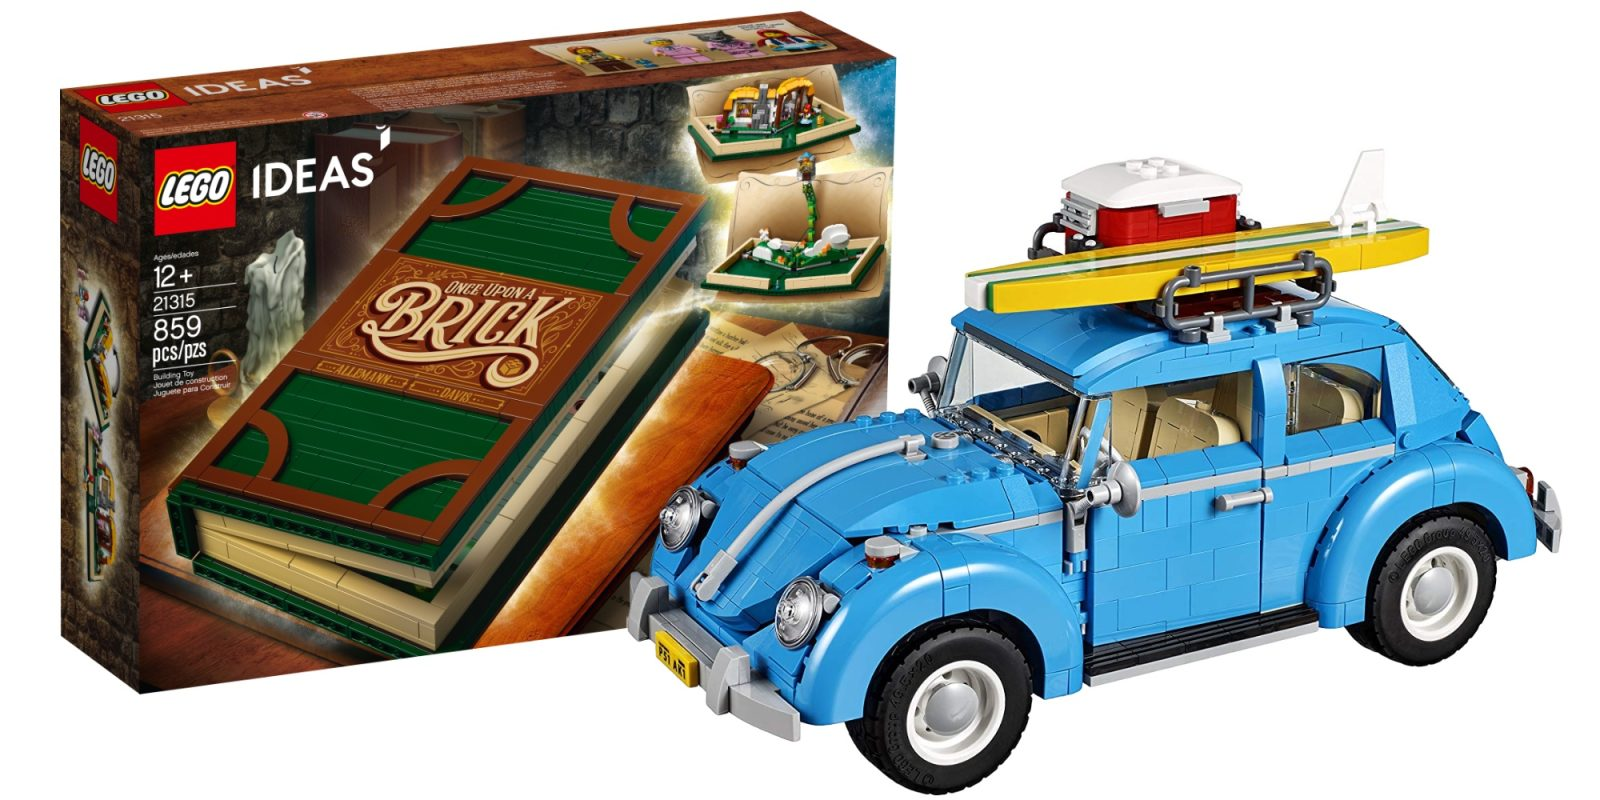 Score Amazon lows on the LEGO Ideas Pop-Up Book at $43 + Volkswagen Beetle $70